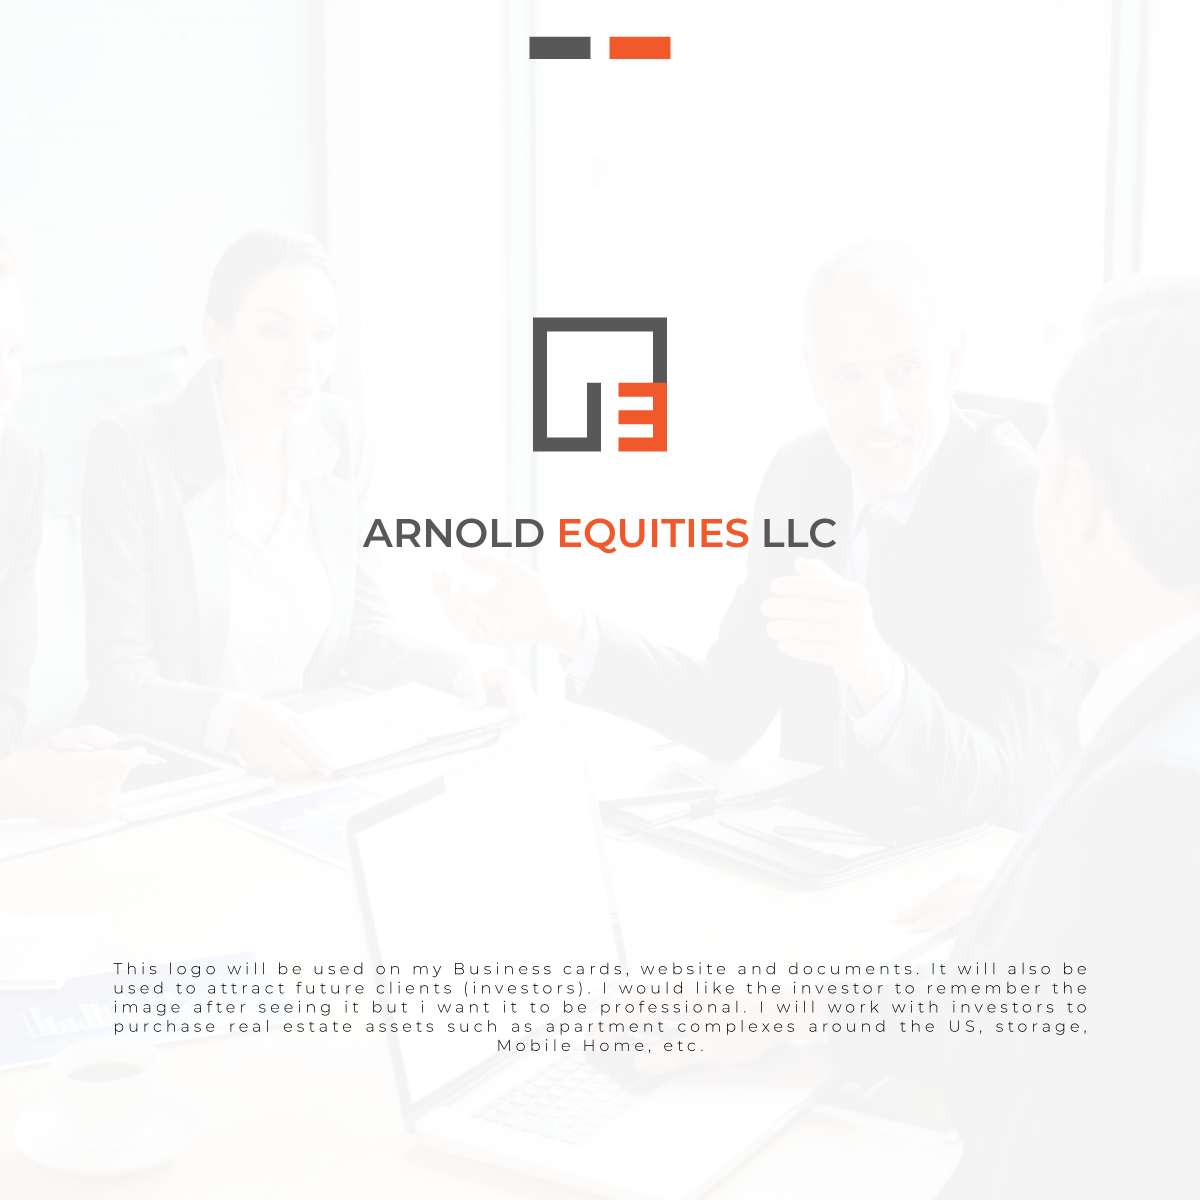 Professional, Serious, Investment Logo Design for Arnold Equities